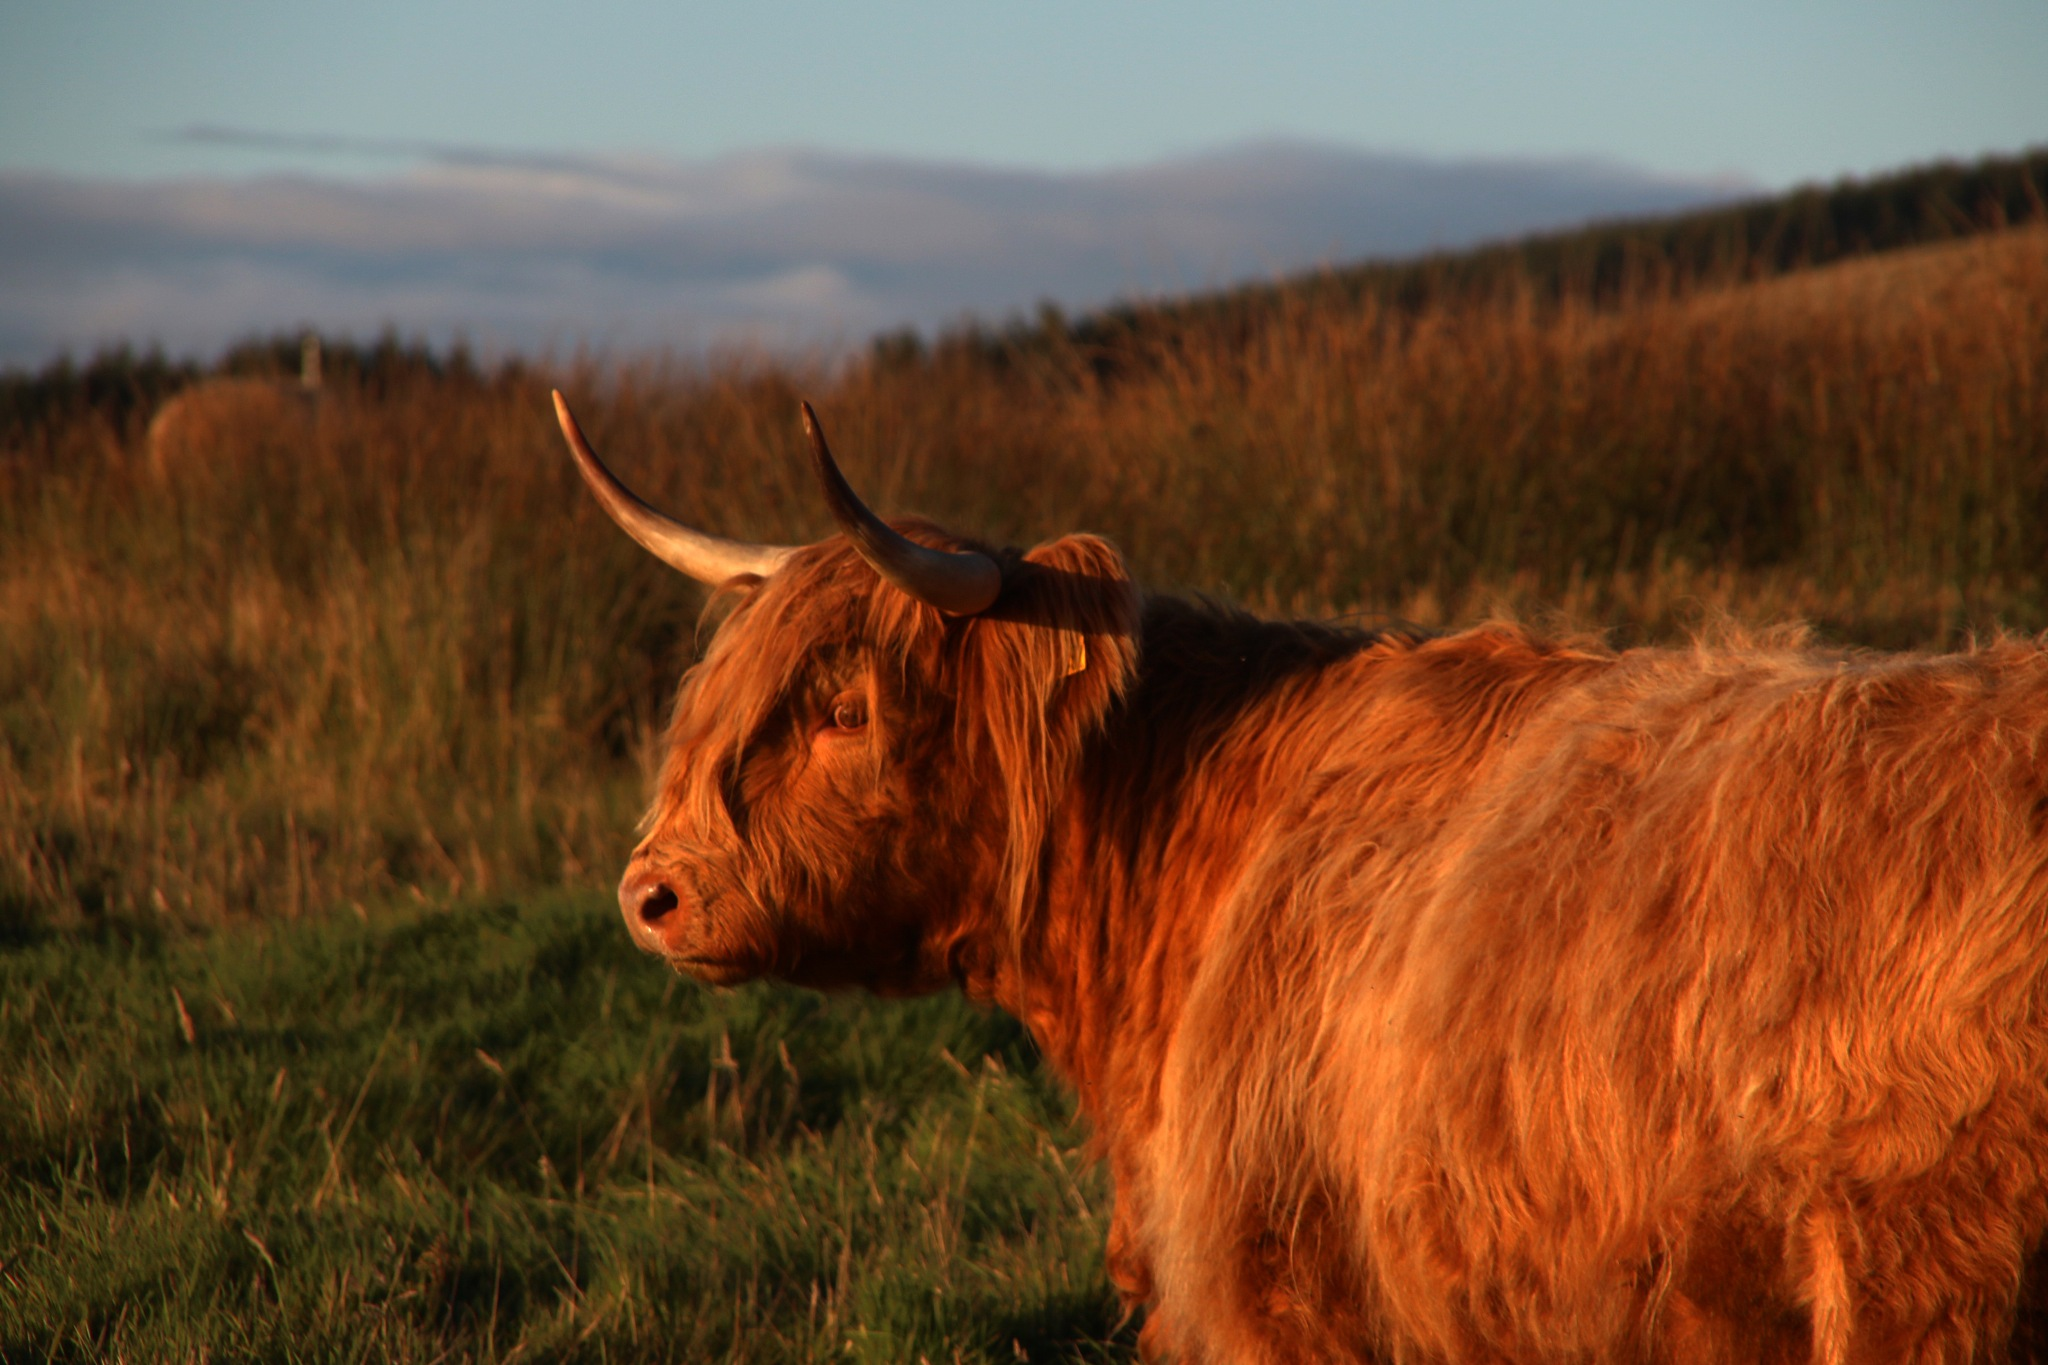 heilin coo by marcosparco